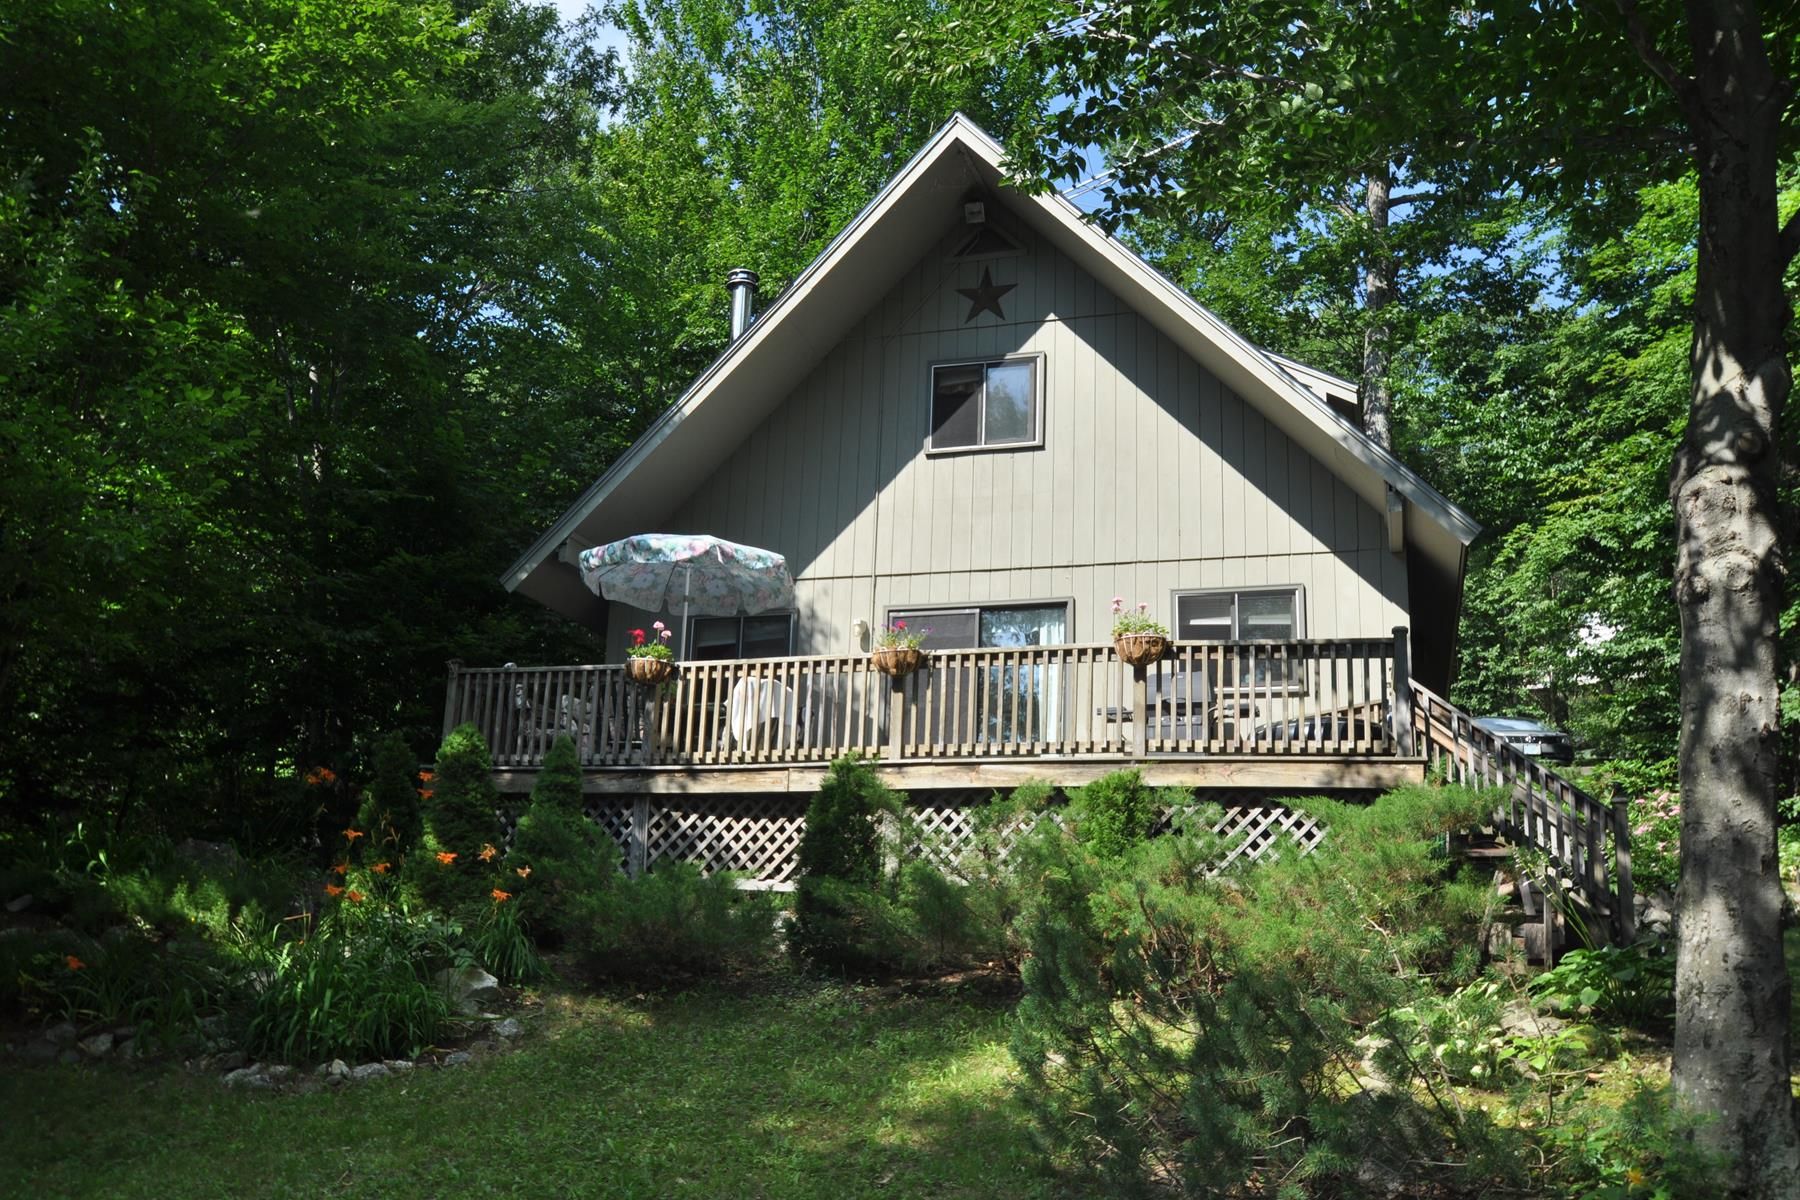 Single Family Home for Sale at 363 Chalk Pond Rd, Newbury Newbury, New Hampshire 03255 United States